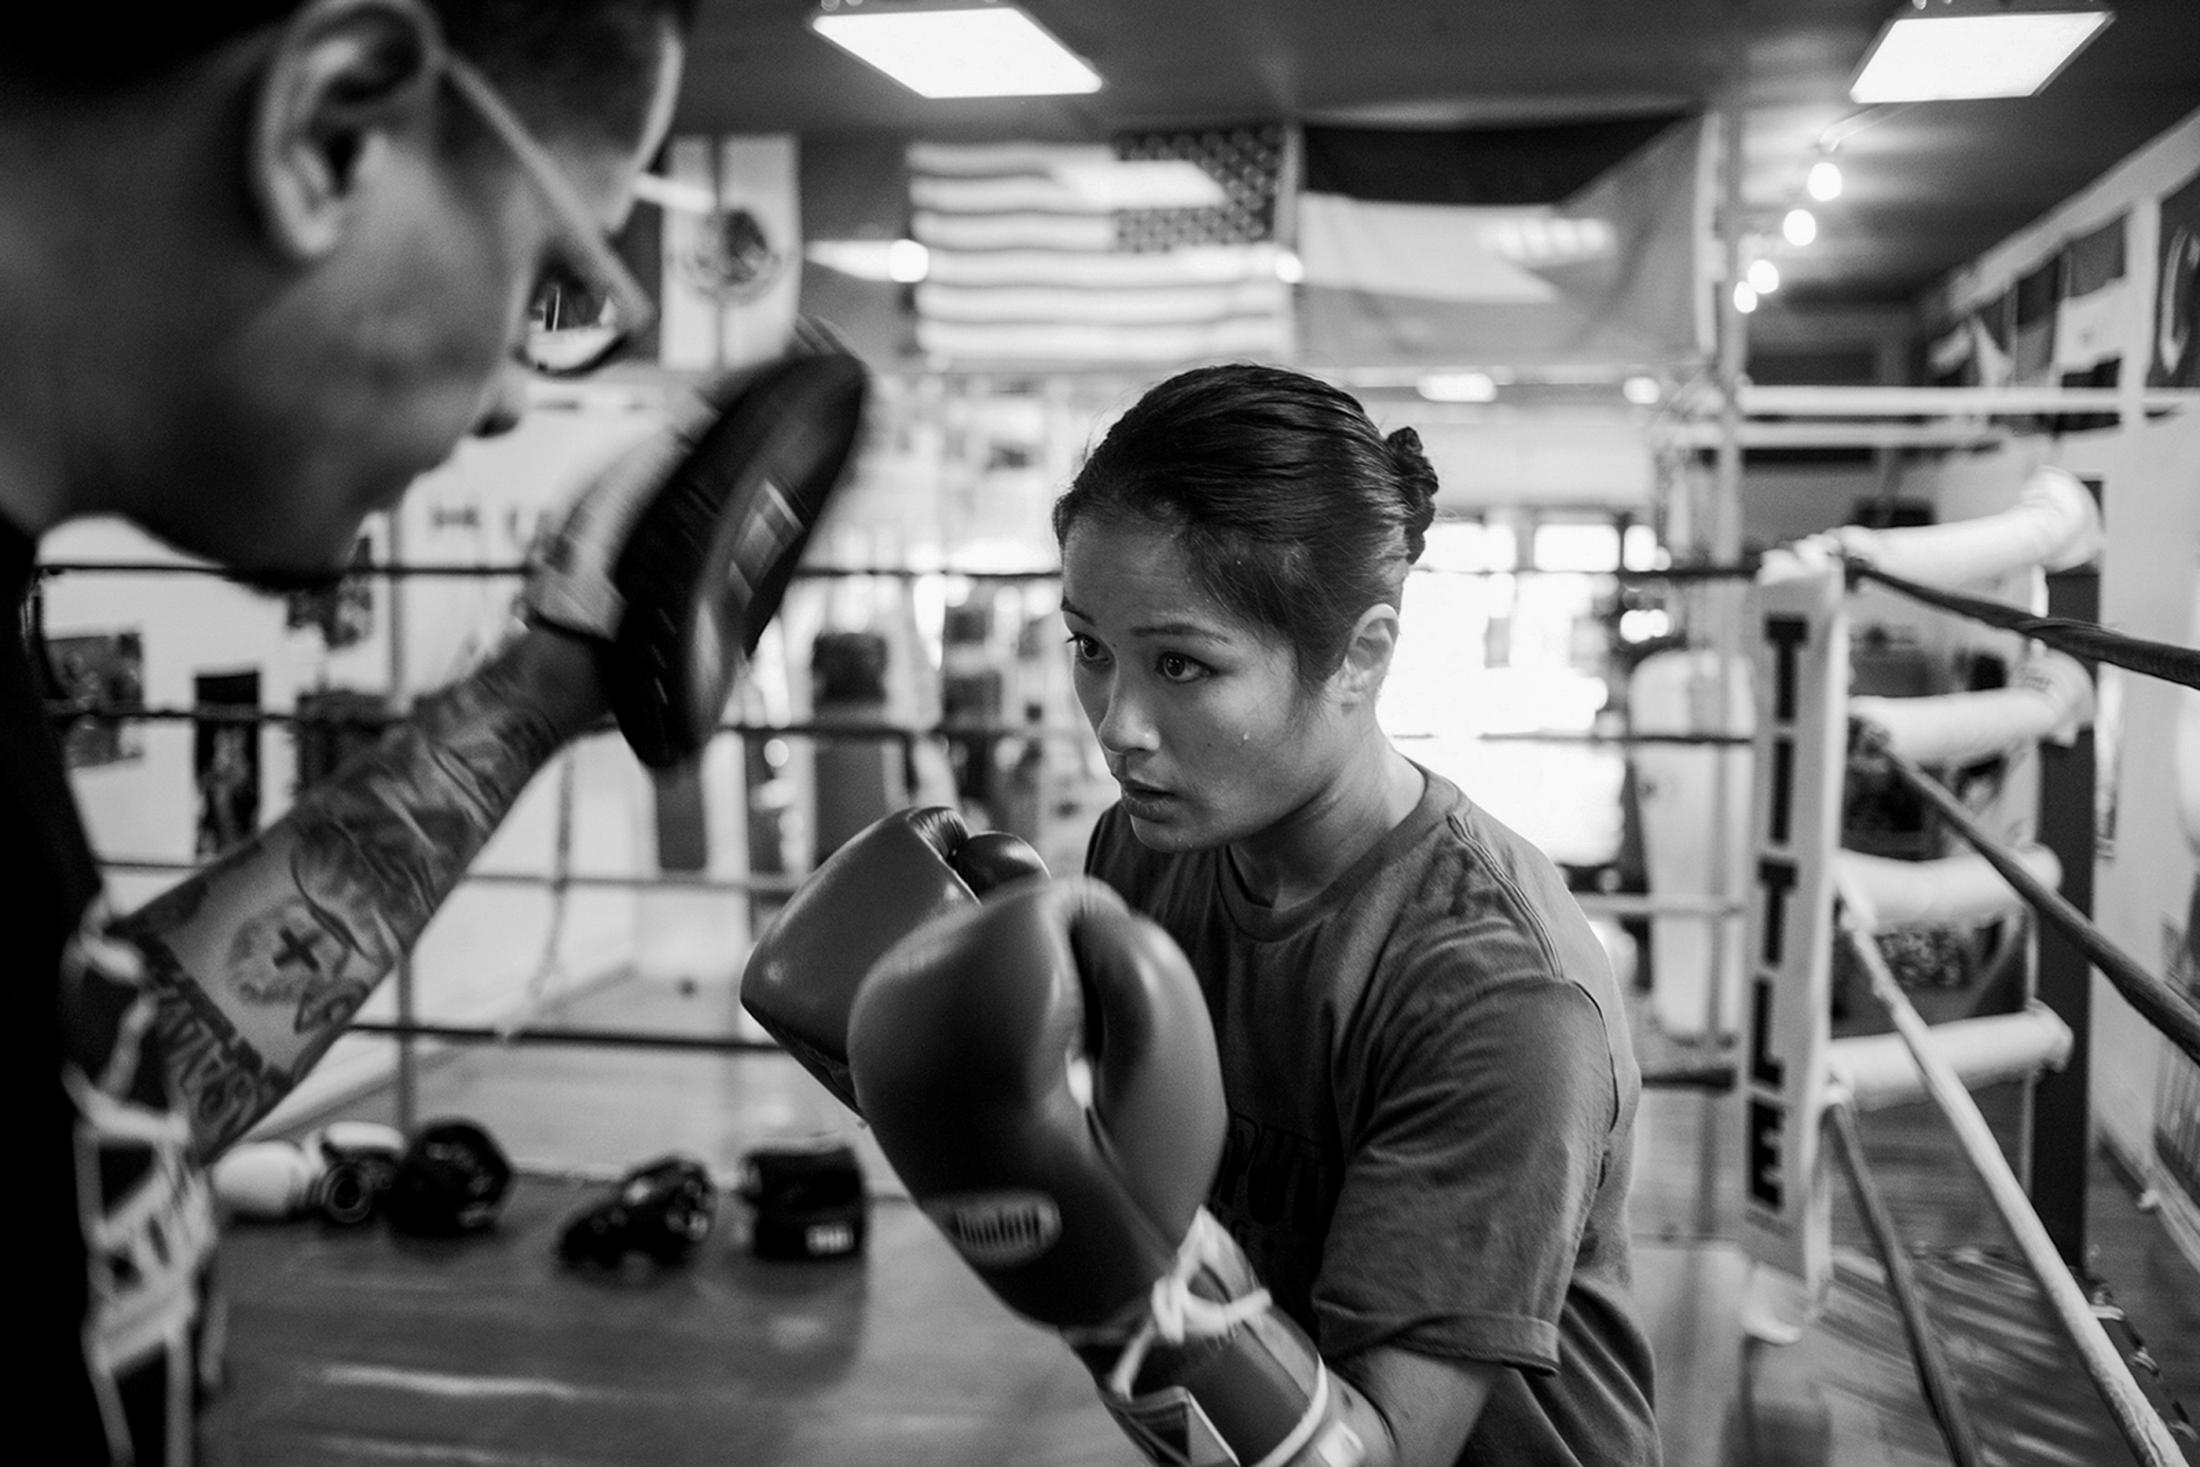 Jairo Escobar, Casey Morton's full-time coach, works with her to improve strategy and learn new boxing techniques at World Class Boxing Gym in San Francisco, CA.